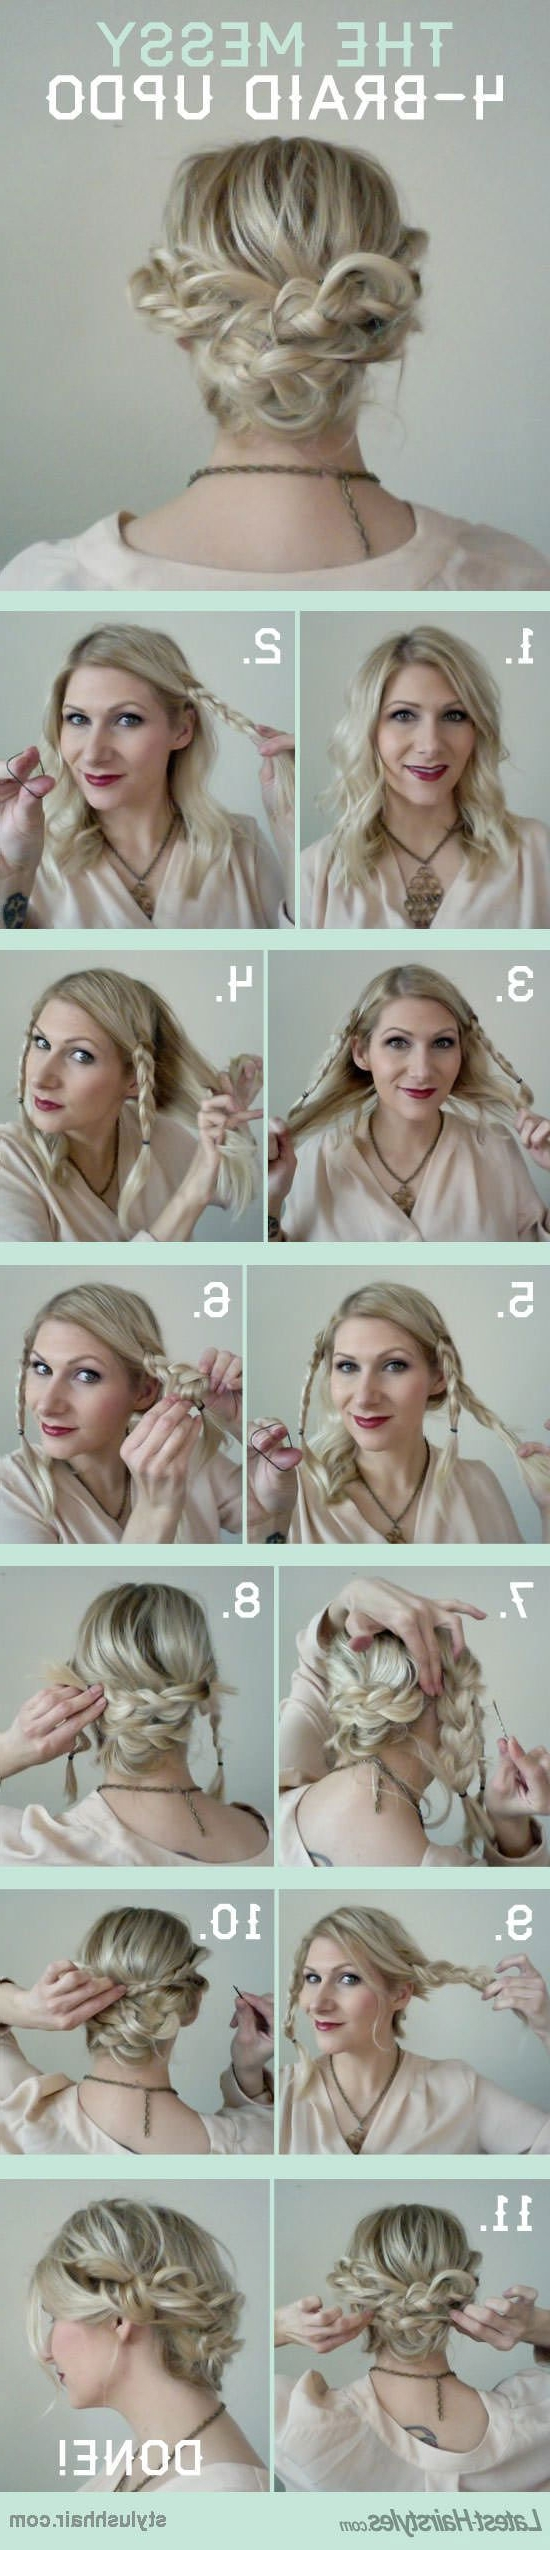 15 Cute And Easy Hairstyle Tutorials For Medium Length Hair – Gurl In Most Recent Easy Wedding Hairstyles For Shoulder Length Hair (View 3 of 15)